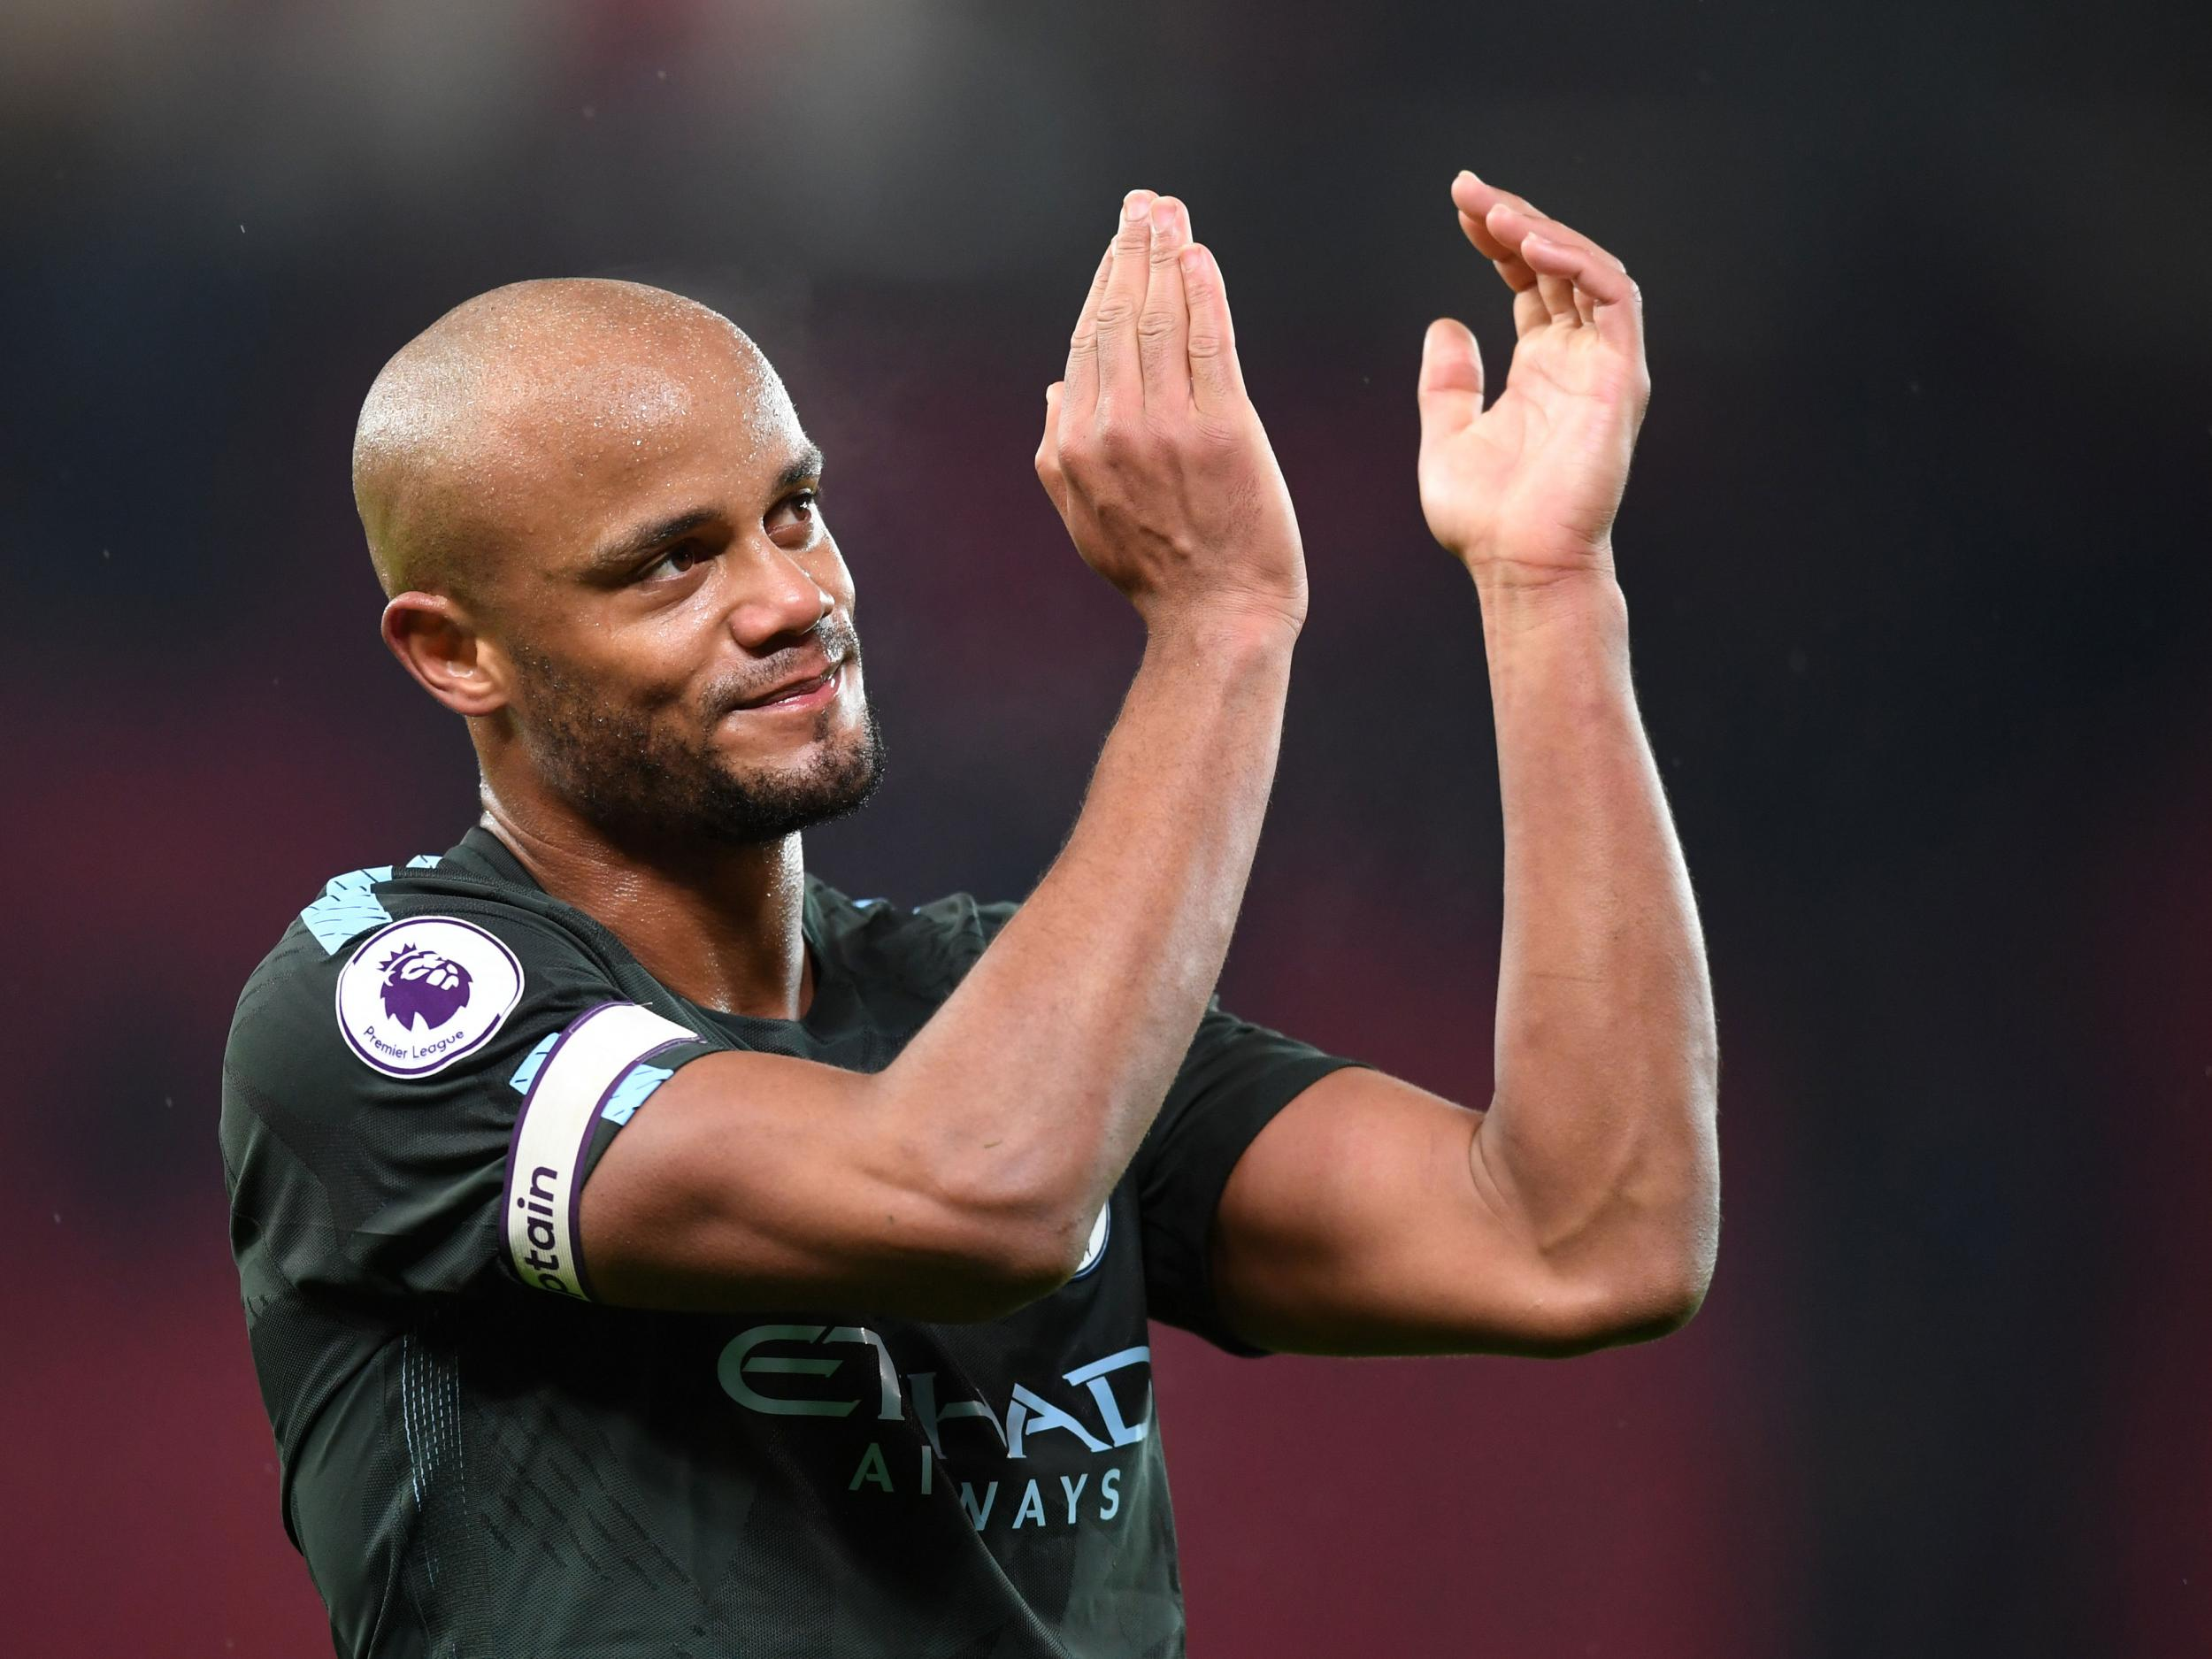 Manchester City defender Vincent Kompany unsure if beating Manchester United would top Sergio Aguero goal